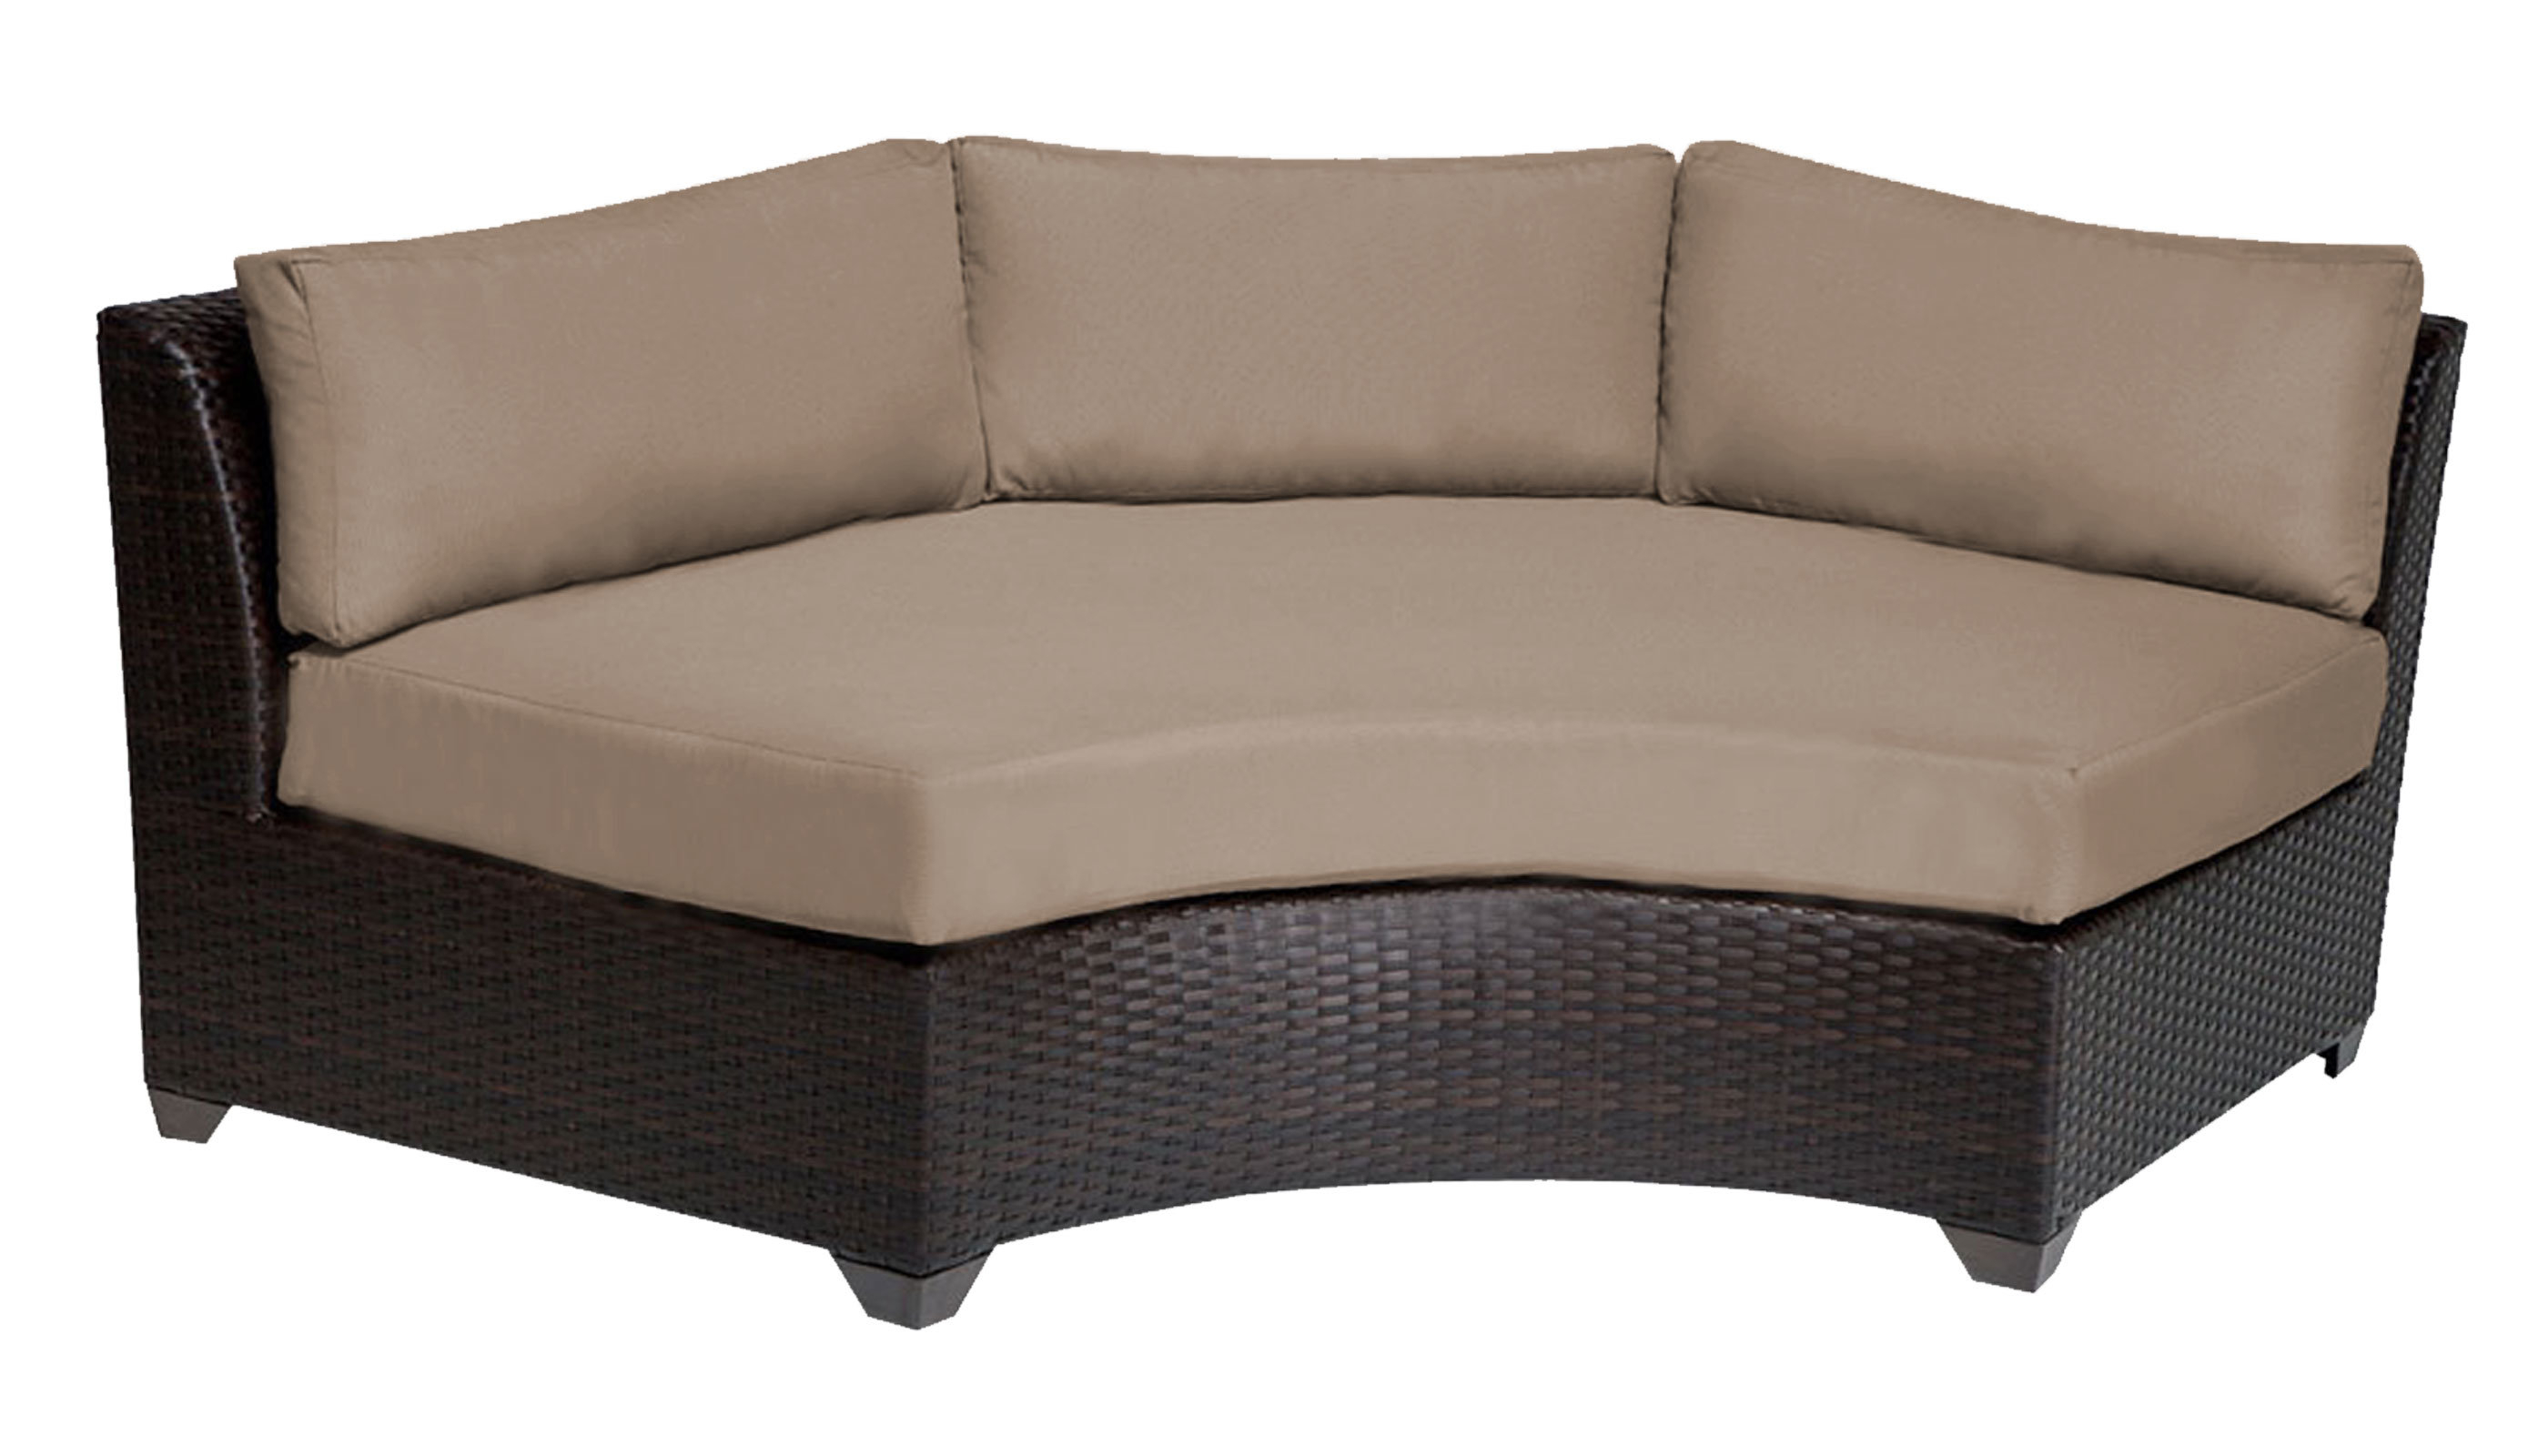 Best And Newest Camak Patio Sofa With Cushions With Regard To Camak Patio Loveseats With Cushions (Gallery 6 of 20)